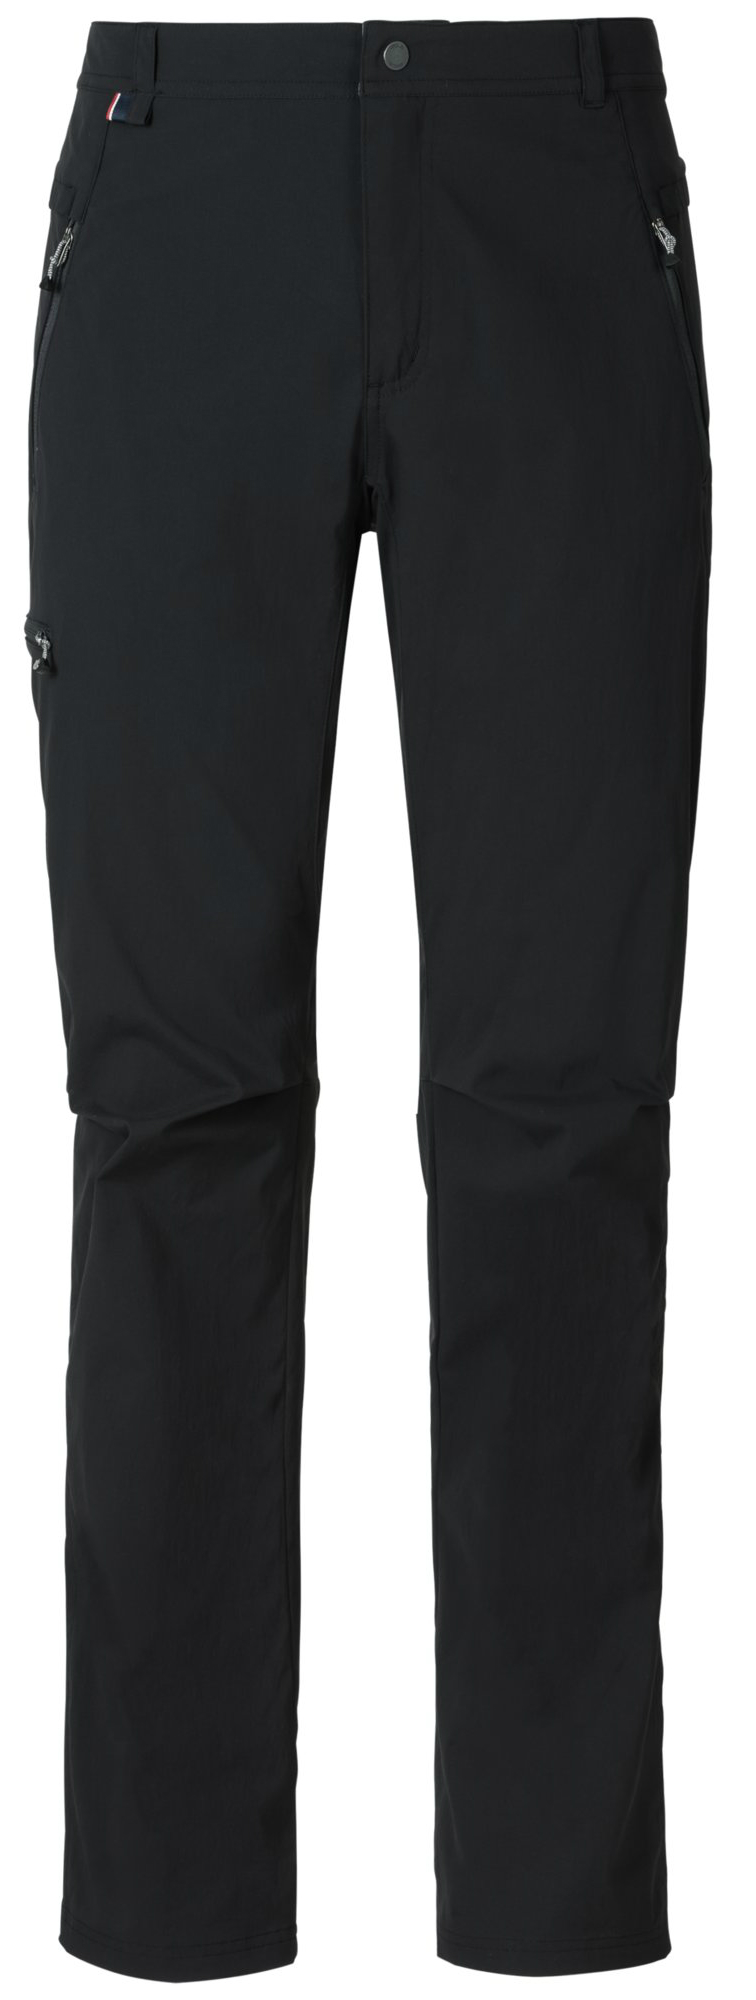 Gibb Outdoors - Odlo - Wedgemount Pants